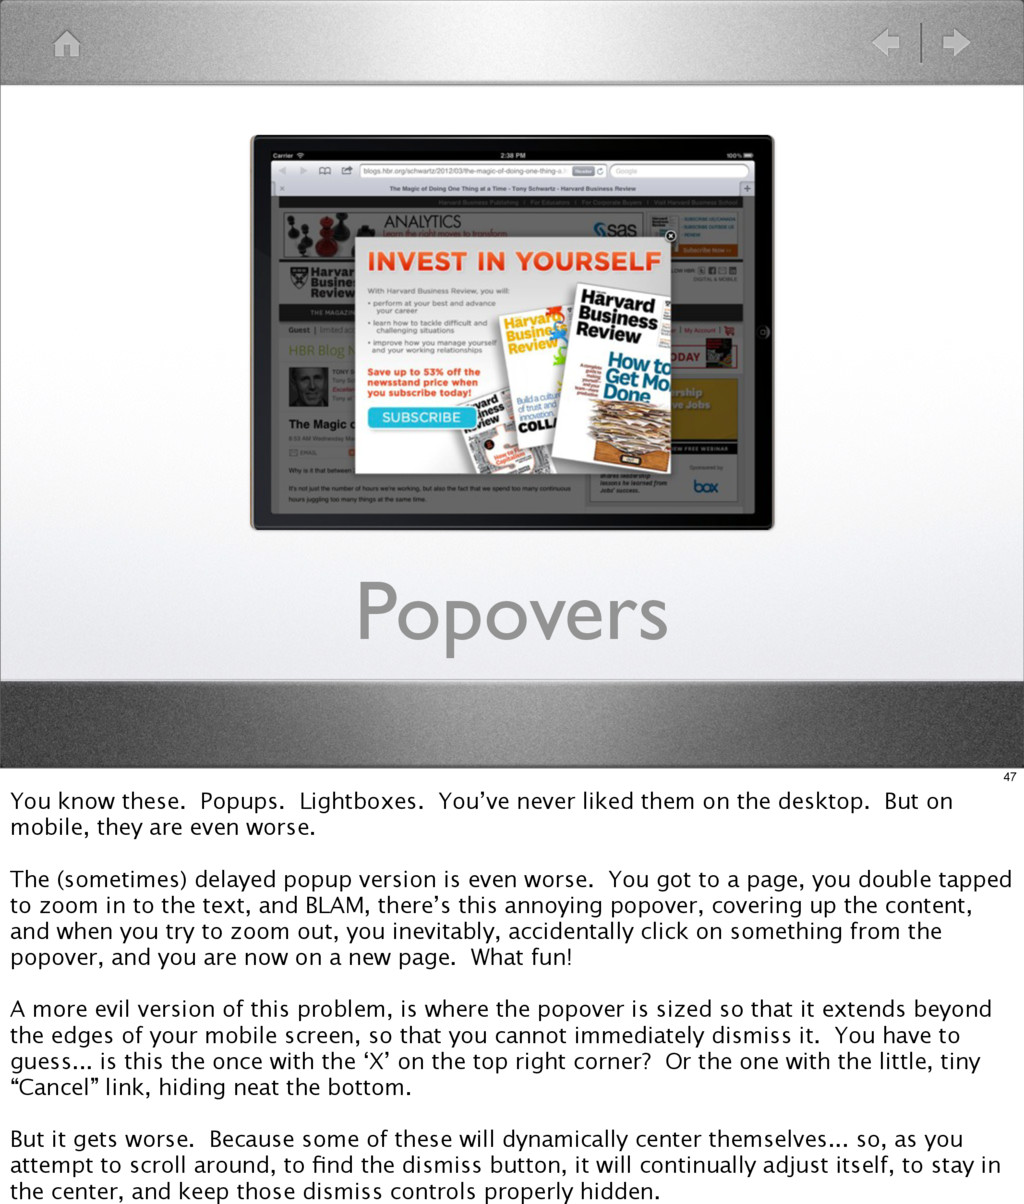 Popovers 47 You know these. Popups. Lightboxes....